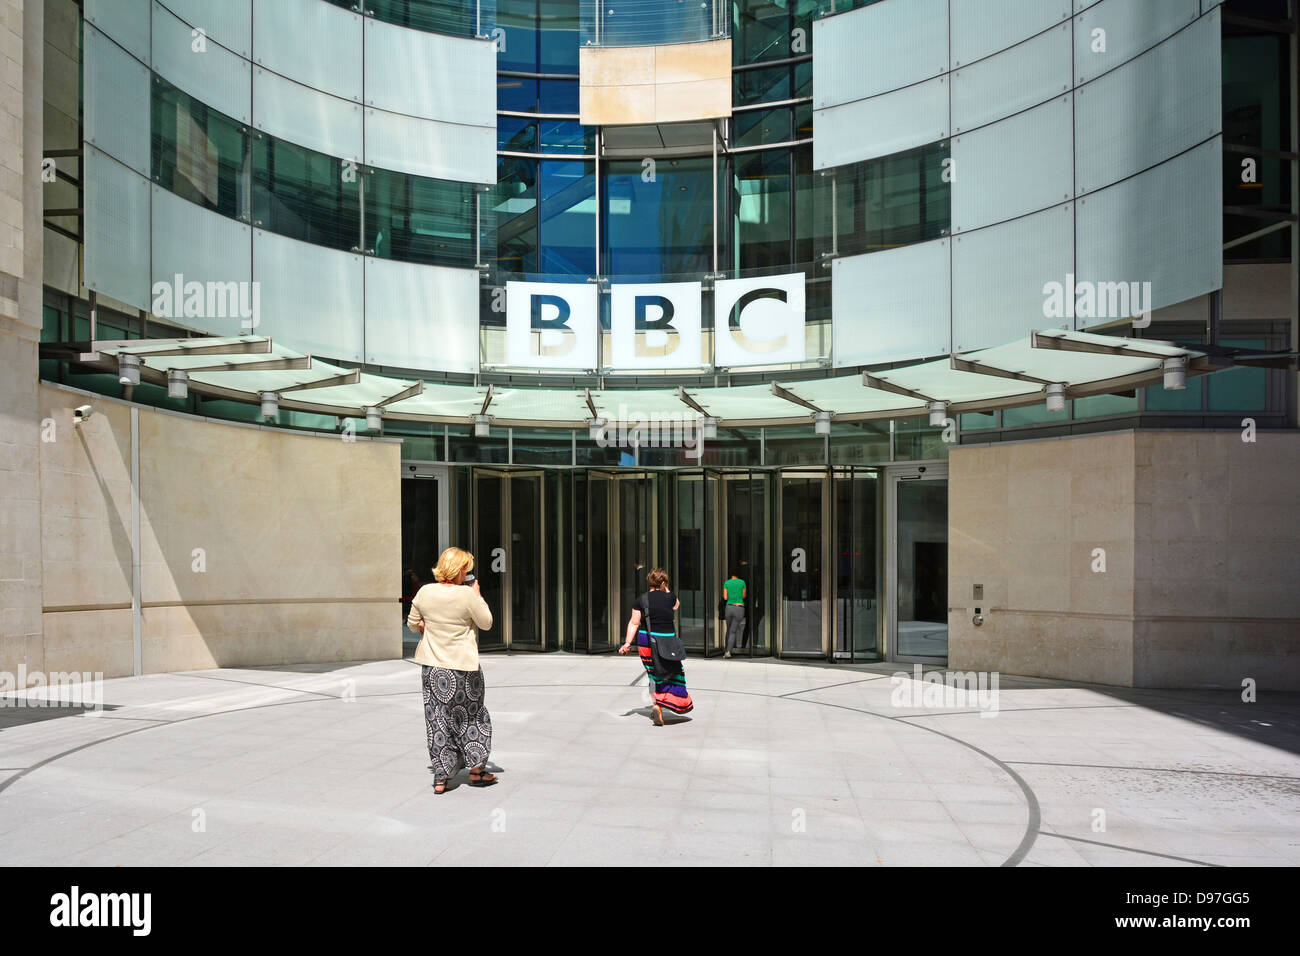 bbc broadcasting house exterior stock photos & bbc broadcasting